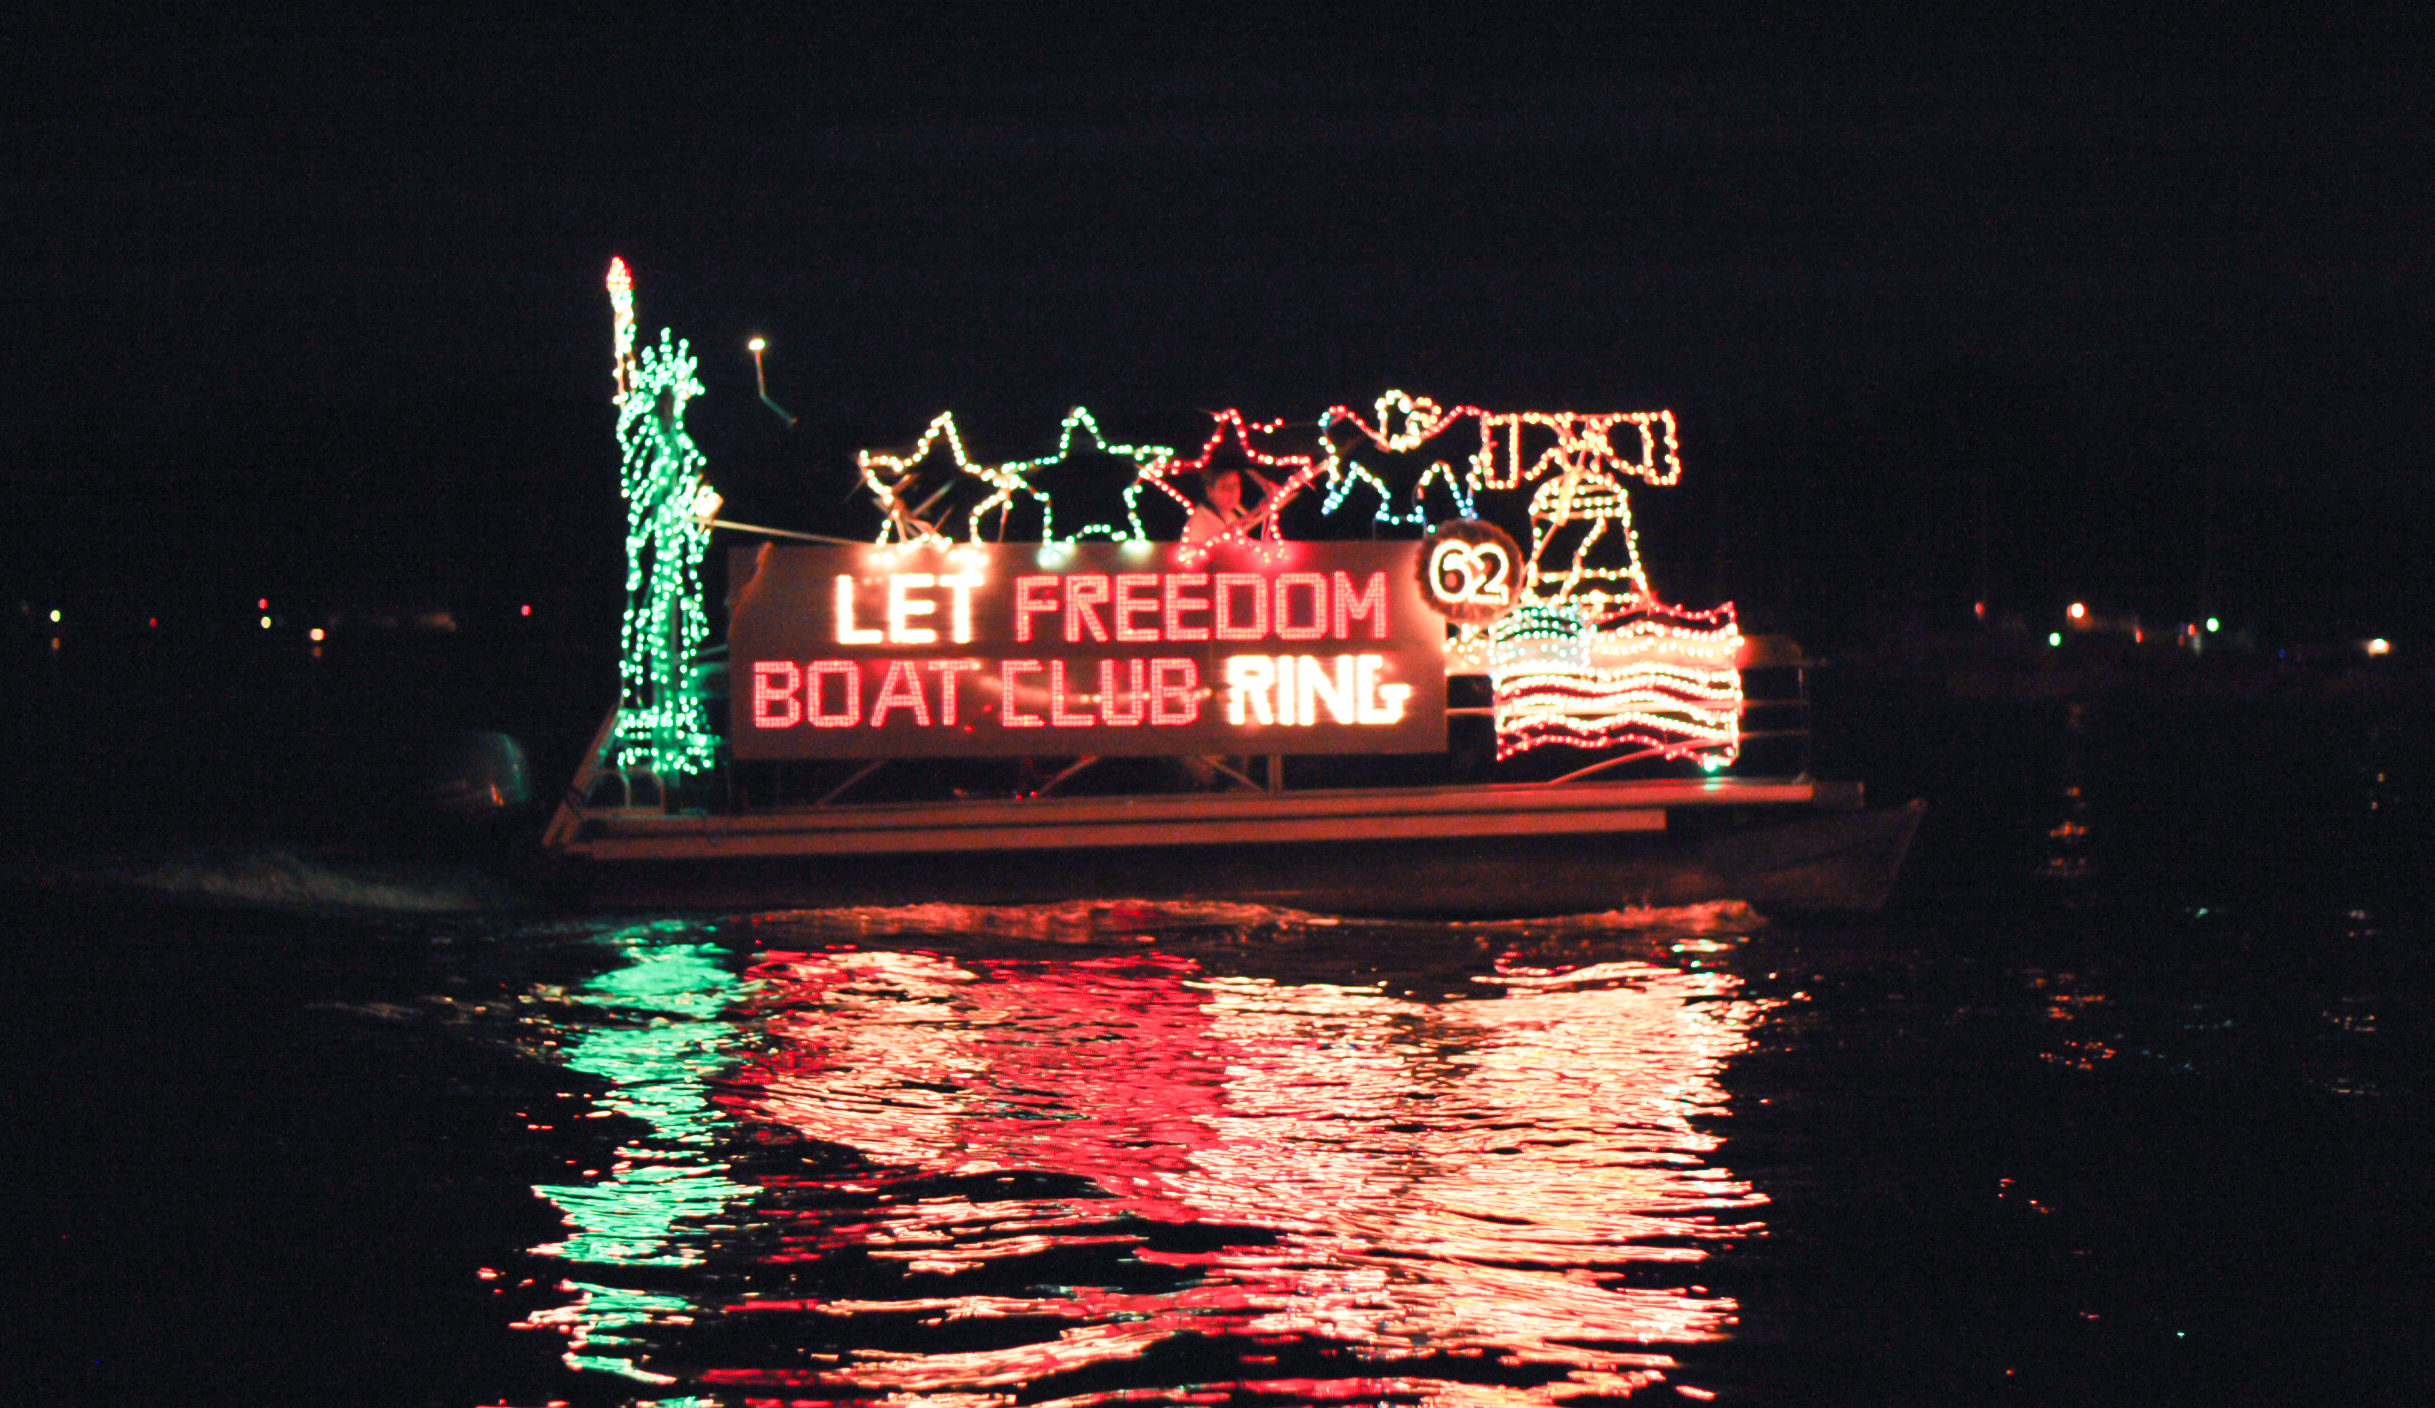 Annual Julington Creek Boat Parade spreads holiday cheer